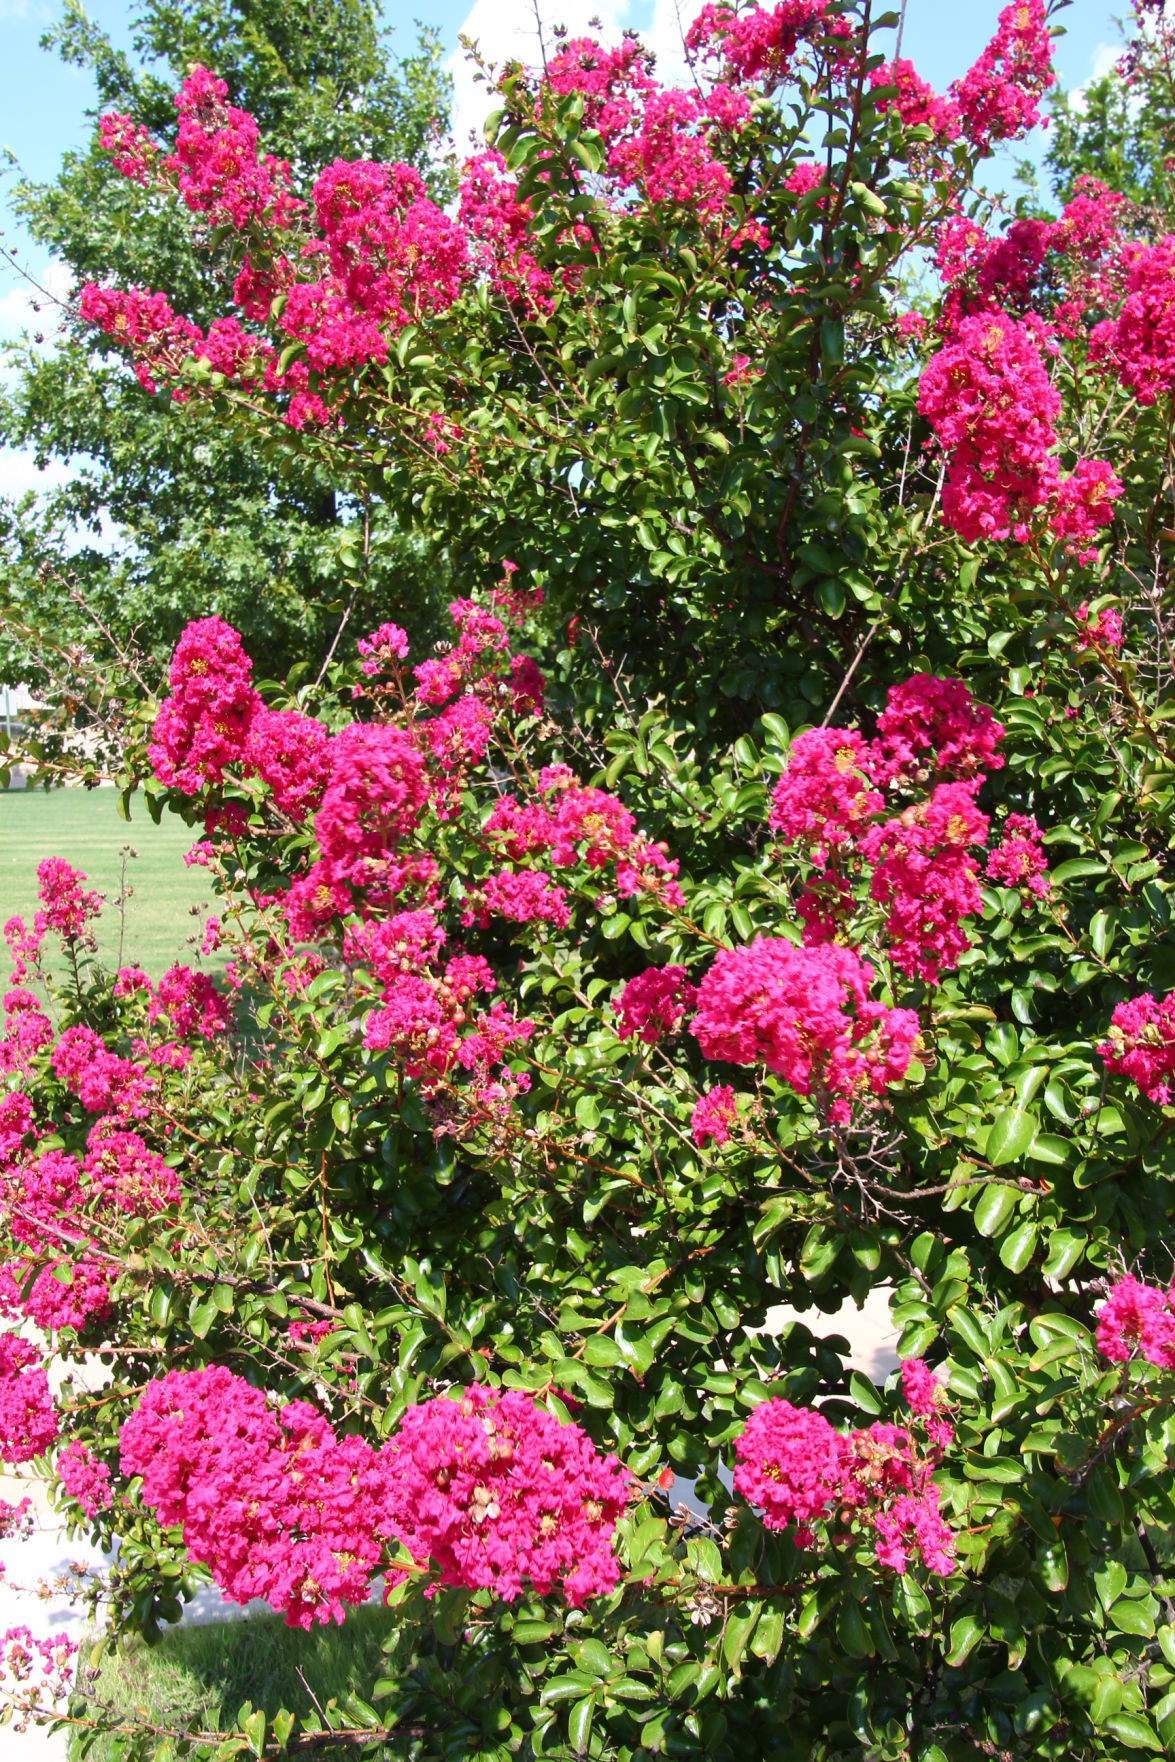 Caressing your crepe myrtle